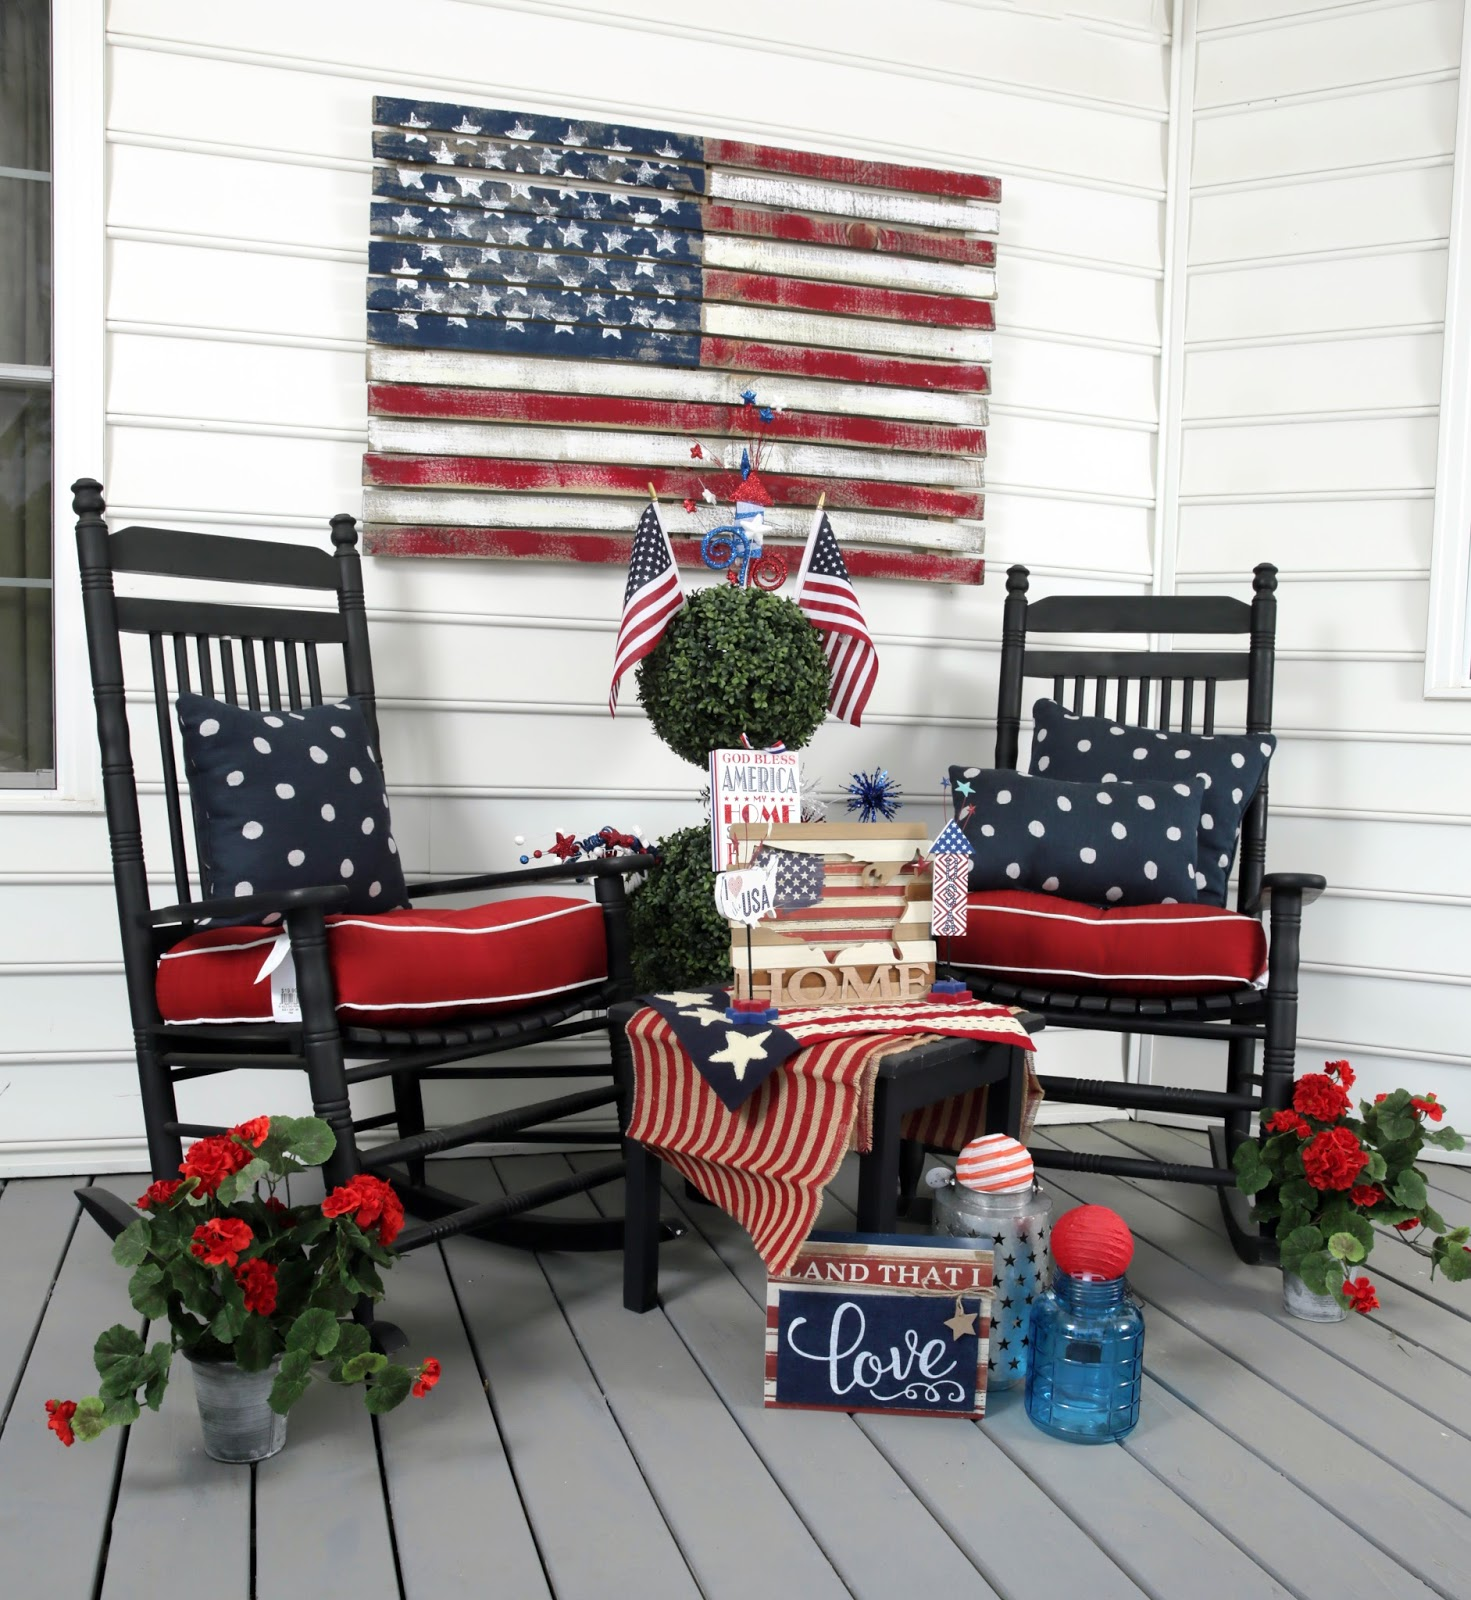 If Youre Hosting A Party Or Just Want To Adorn Your Home With Patriotic Flair Here Are Some Ideas Inspire Independence Day Spirit